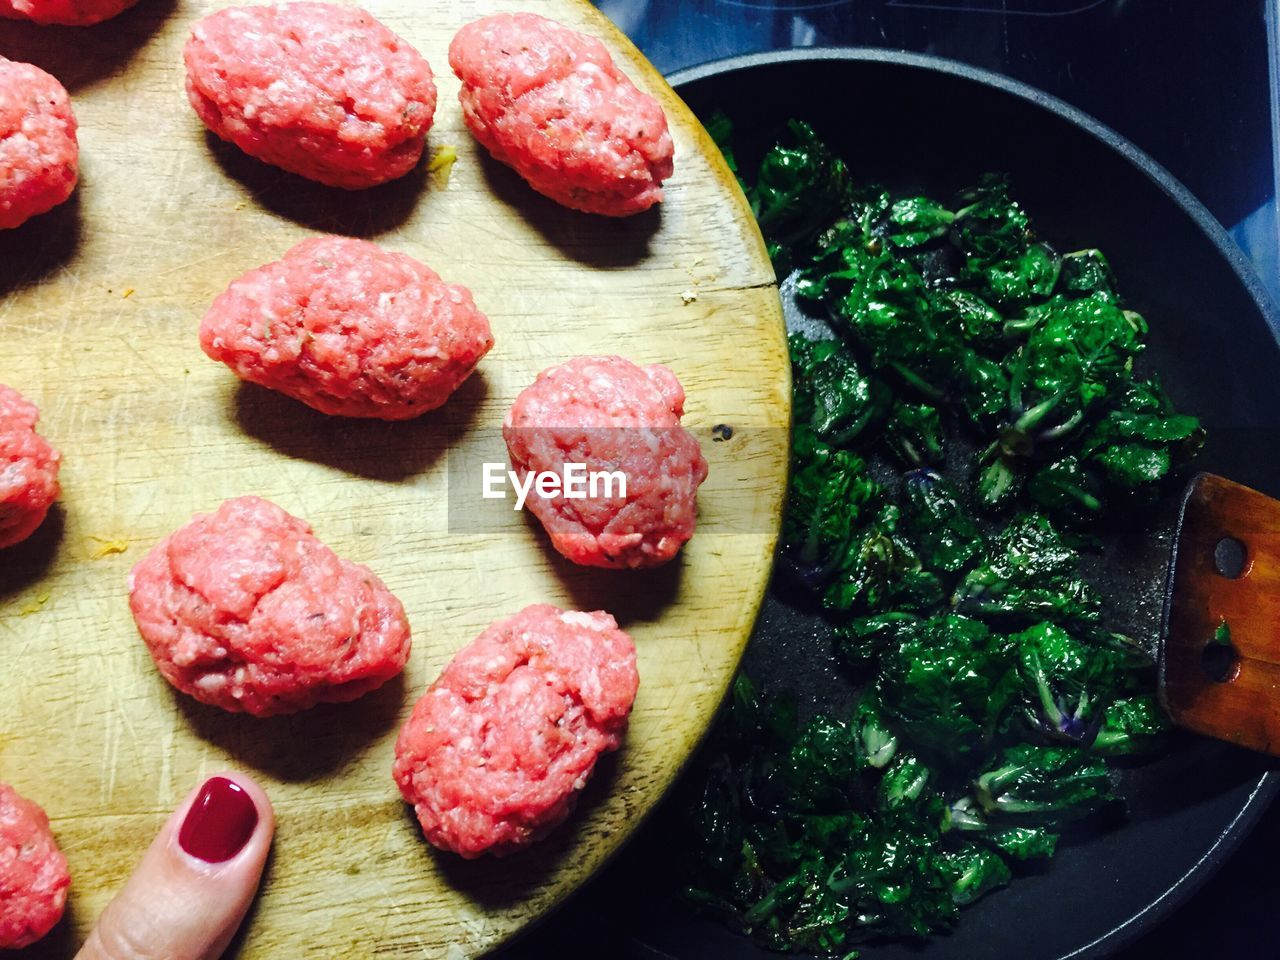 Cropped Image Of Woman Holding Meat On Cutting Board While Preparing Food